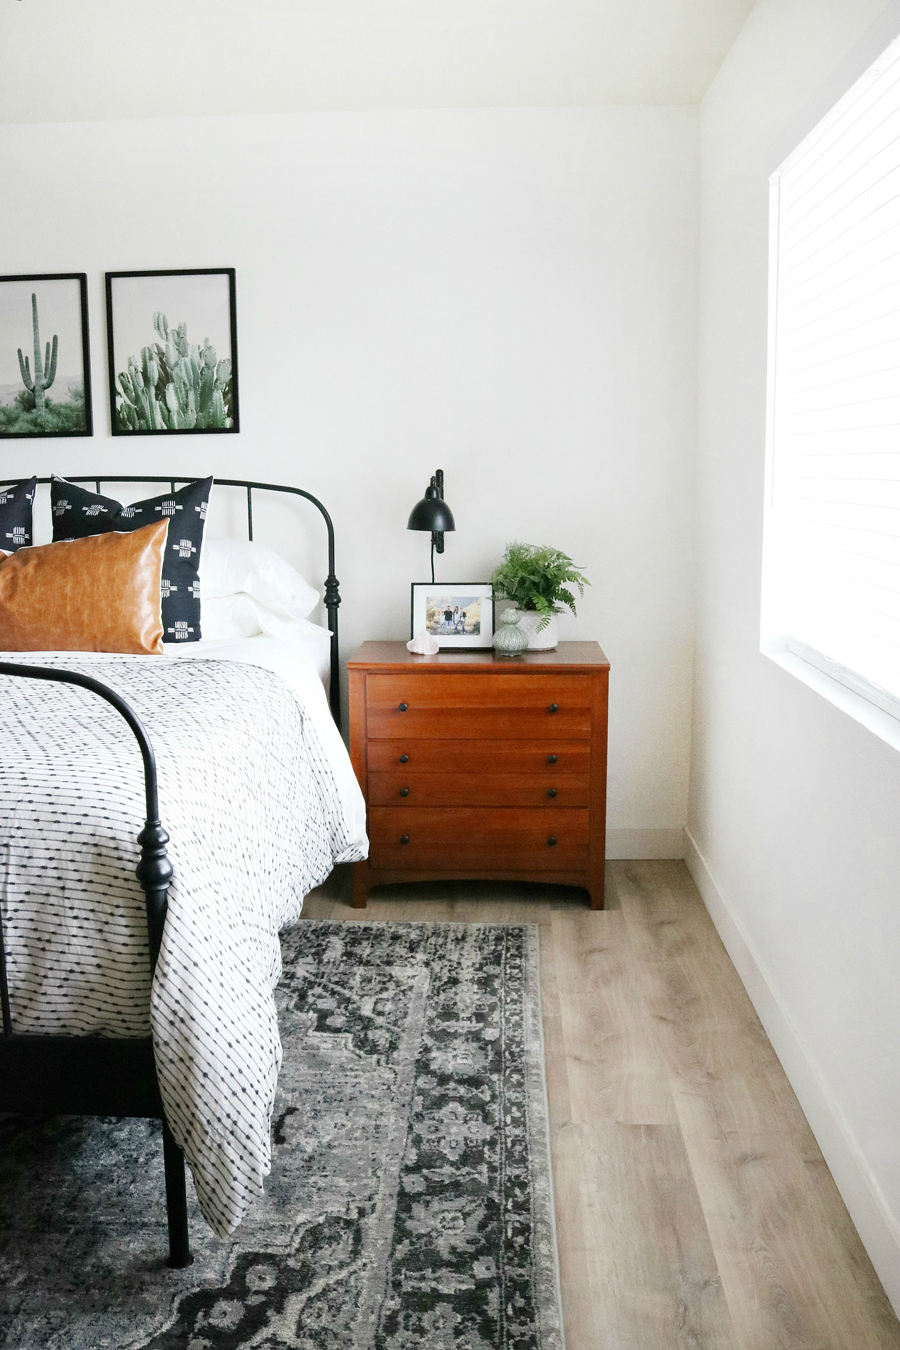 Boho Inspired Decor with Teak Nightstands